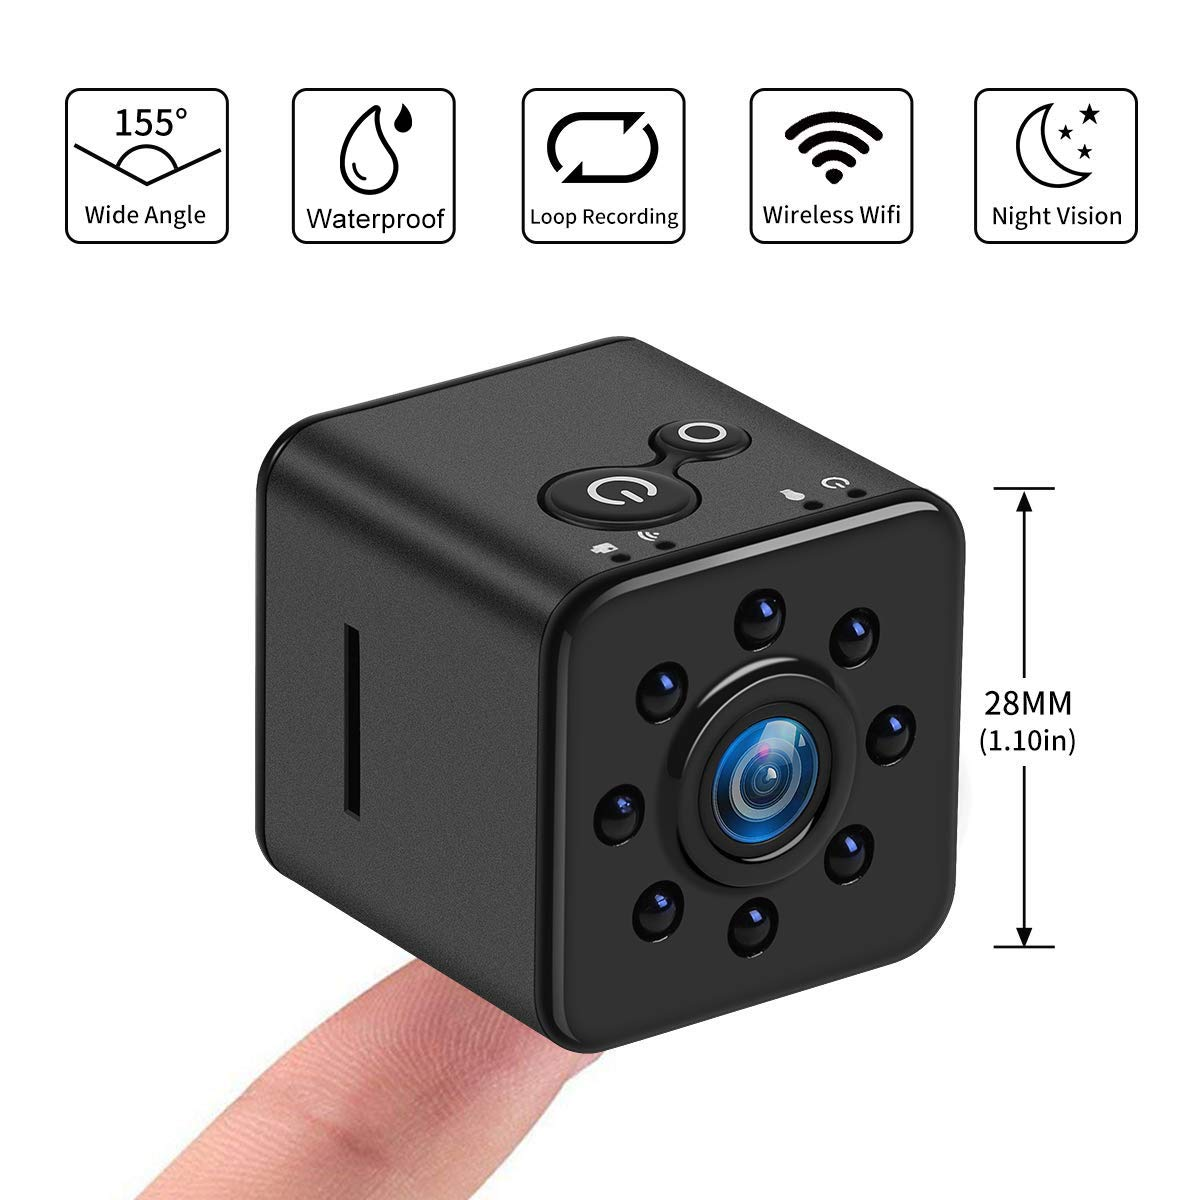 SQ13 1080P HD MAGNETIC WIFI NIGHT VISION AND WATER PROOF MINI CAMERA